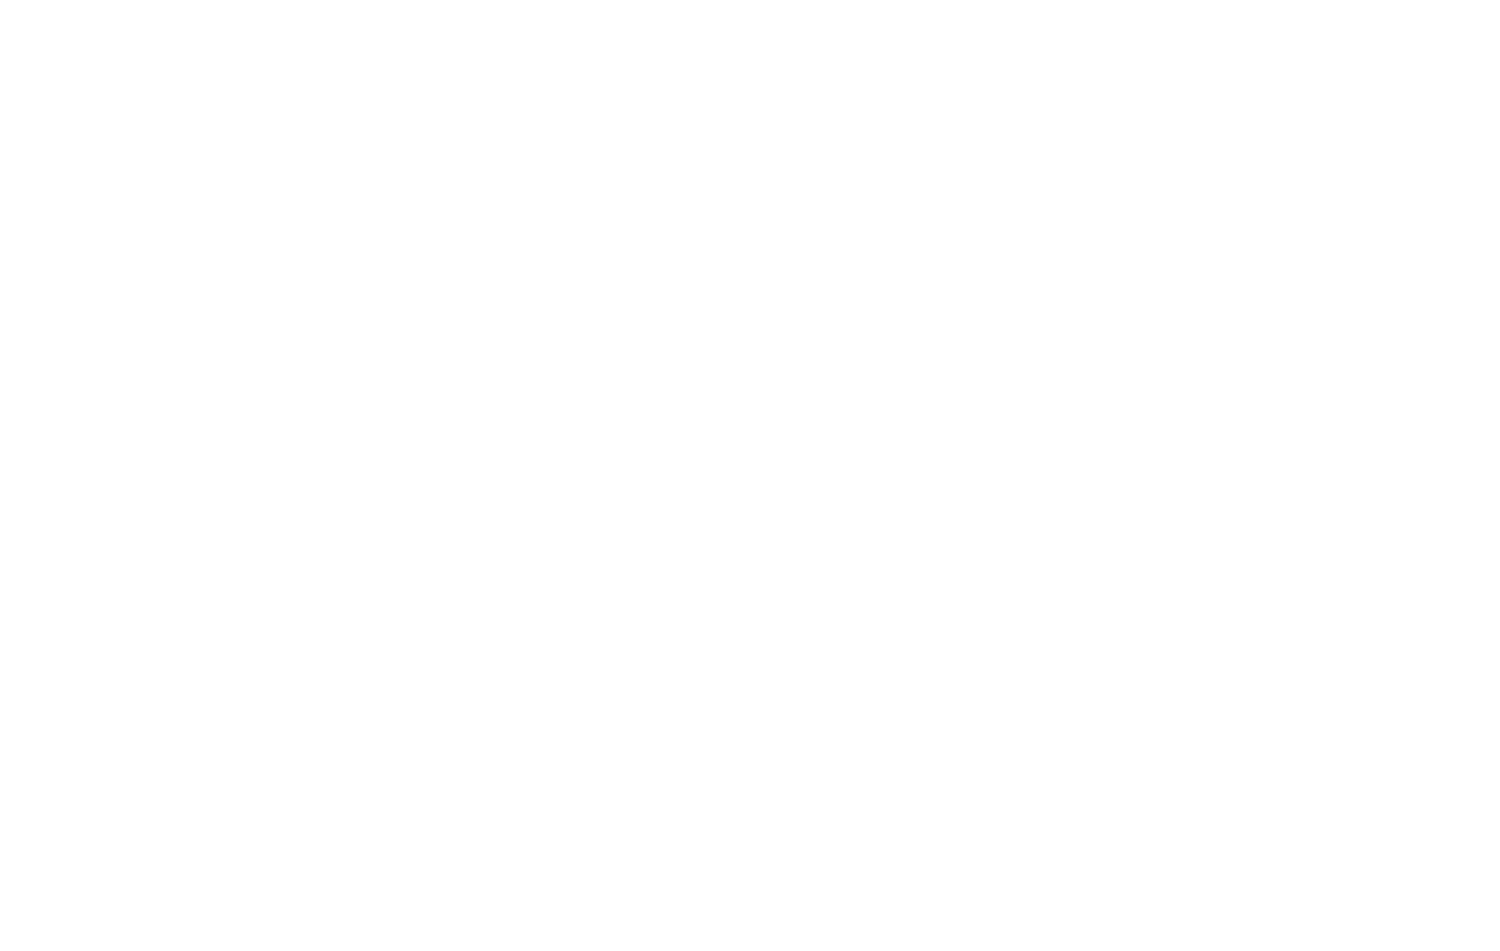 Scott Anderson Attorney at Law